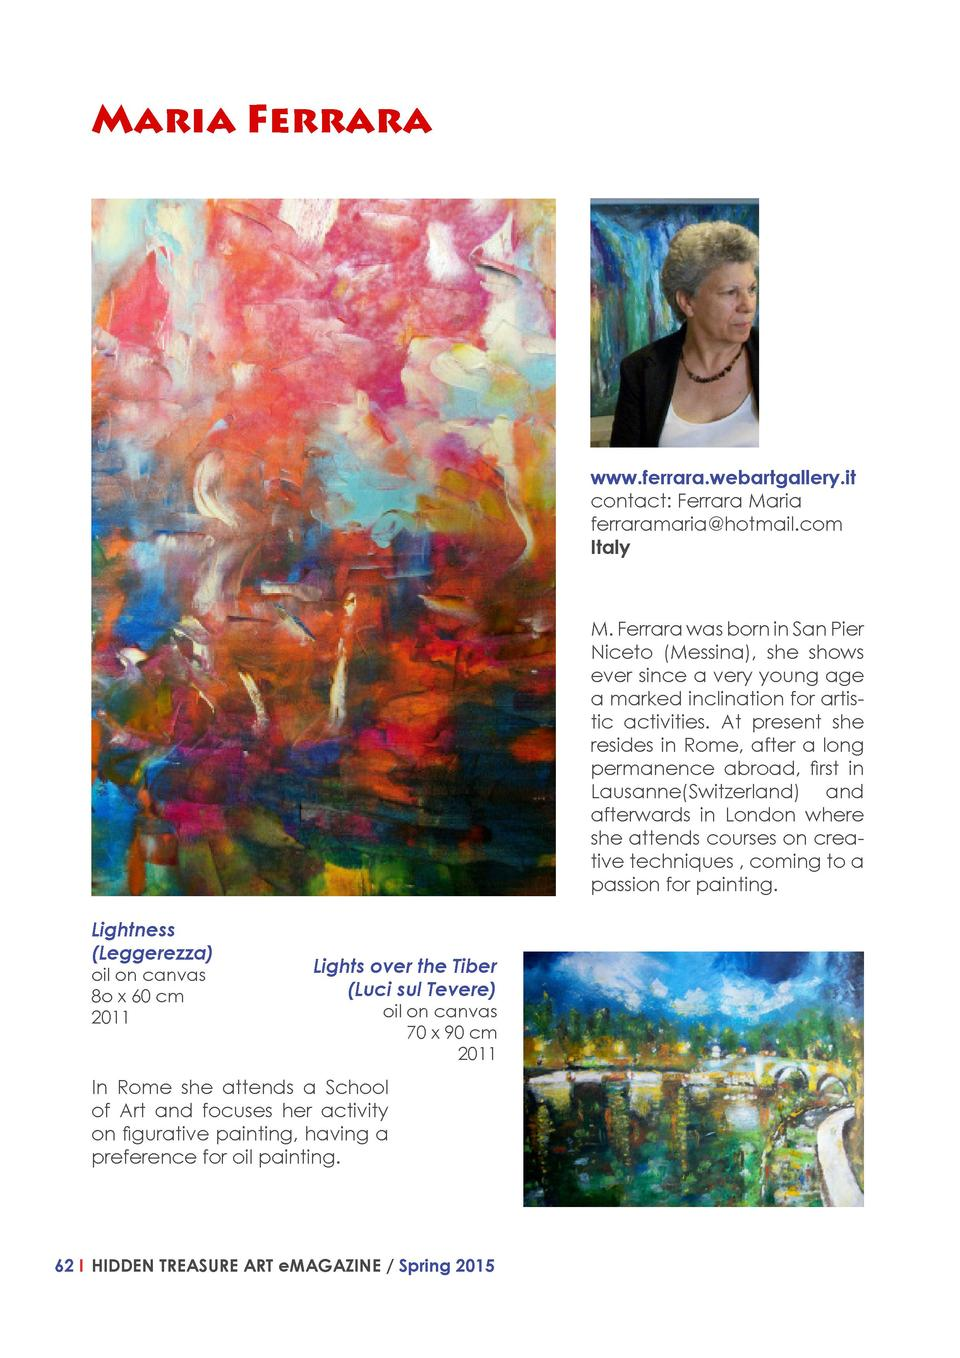 Maria Ferrara  www.ferrara.webartgallery.it contact  Ferrara Maria ferraramaria hotmail.com Italy  M. Ferrara was born in ...